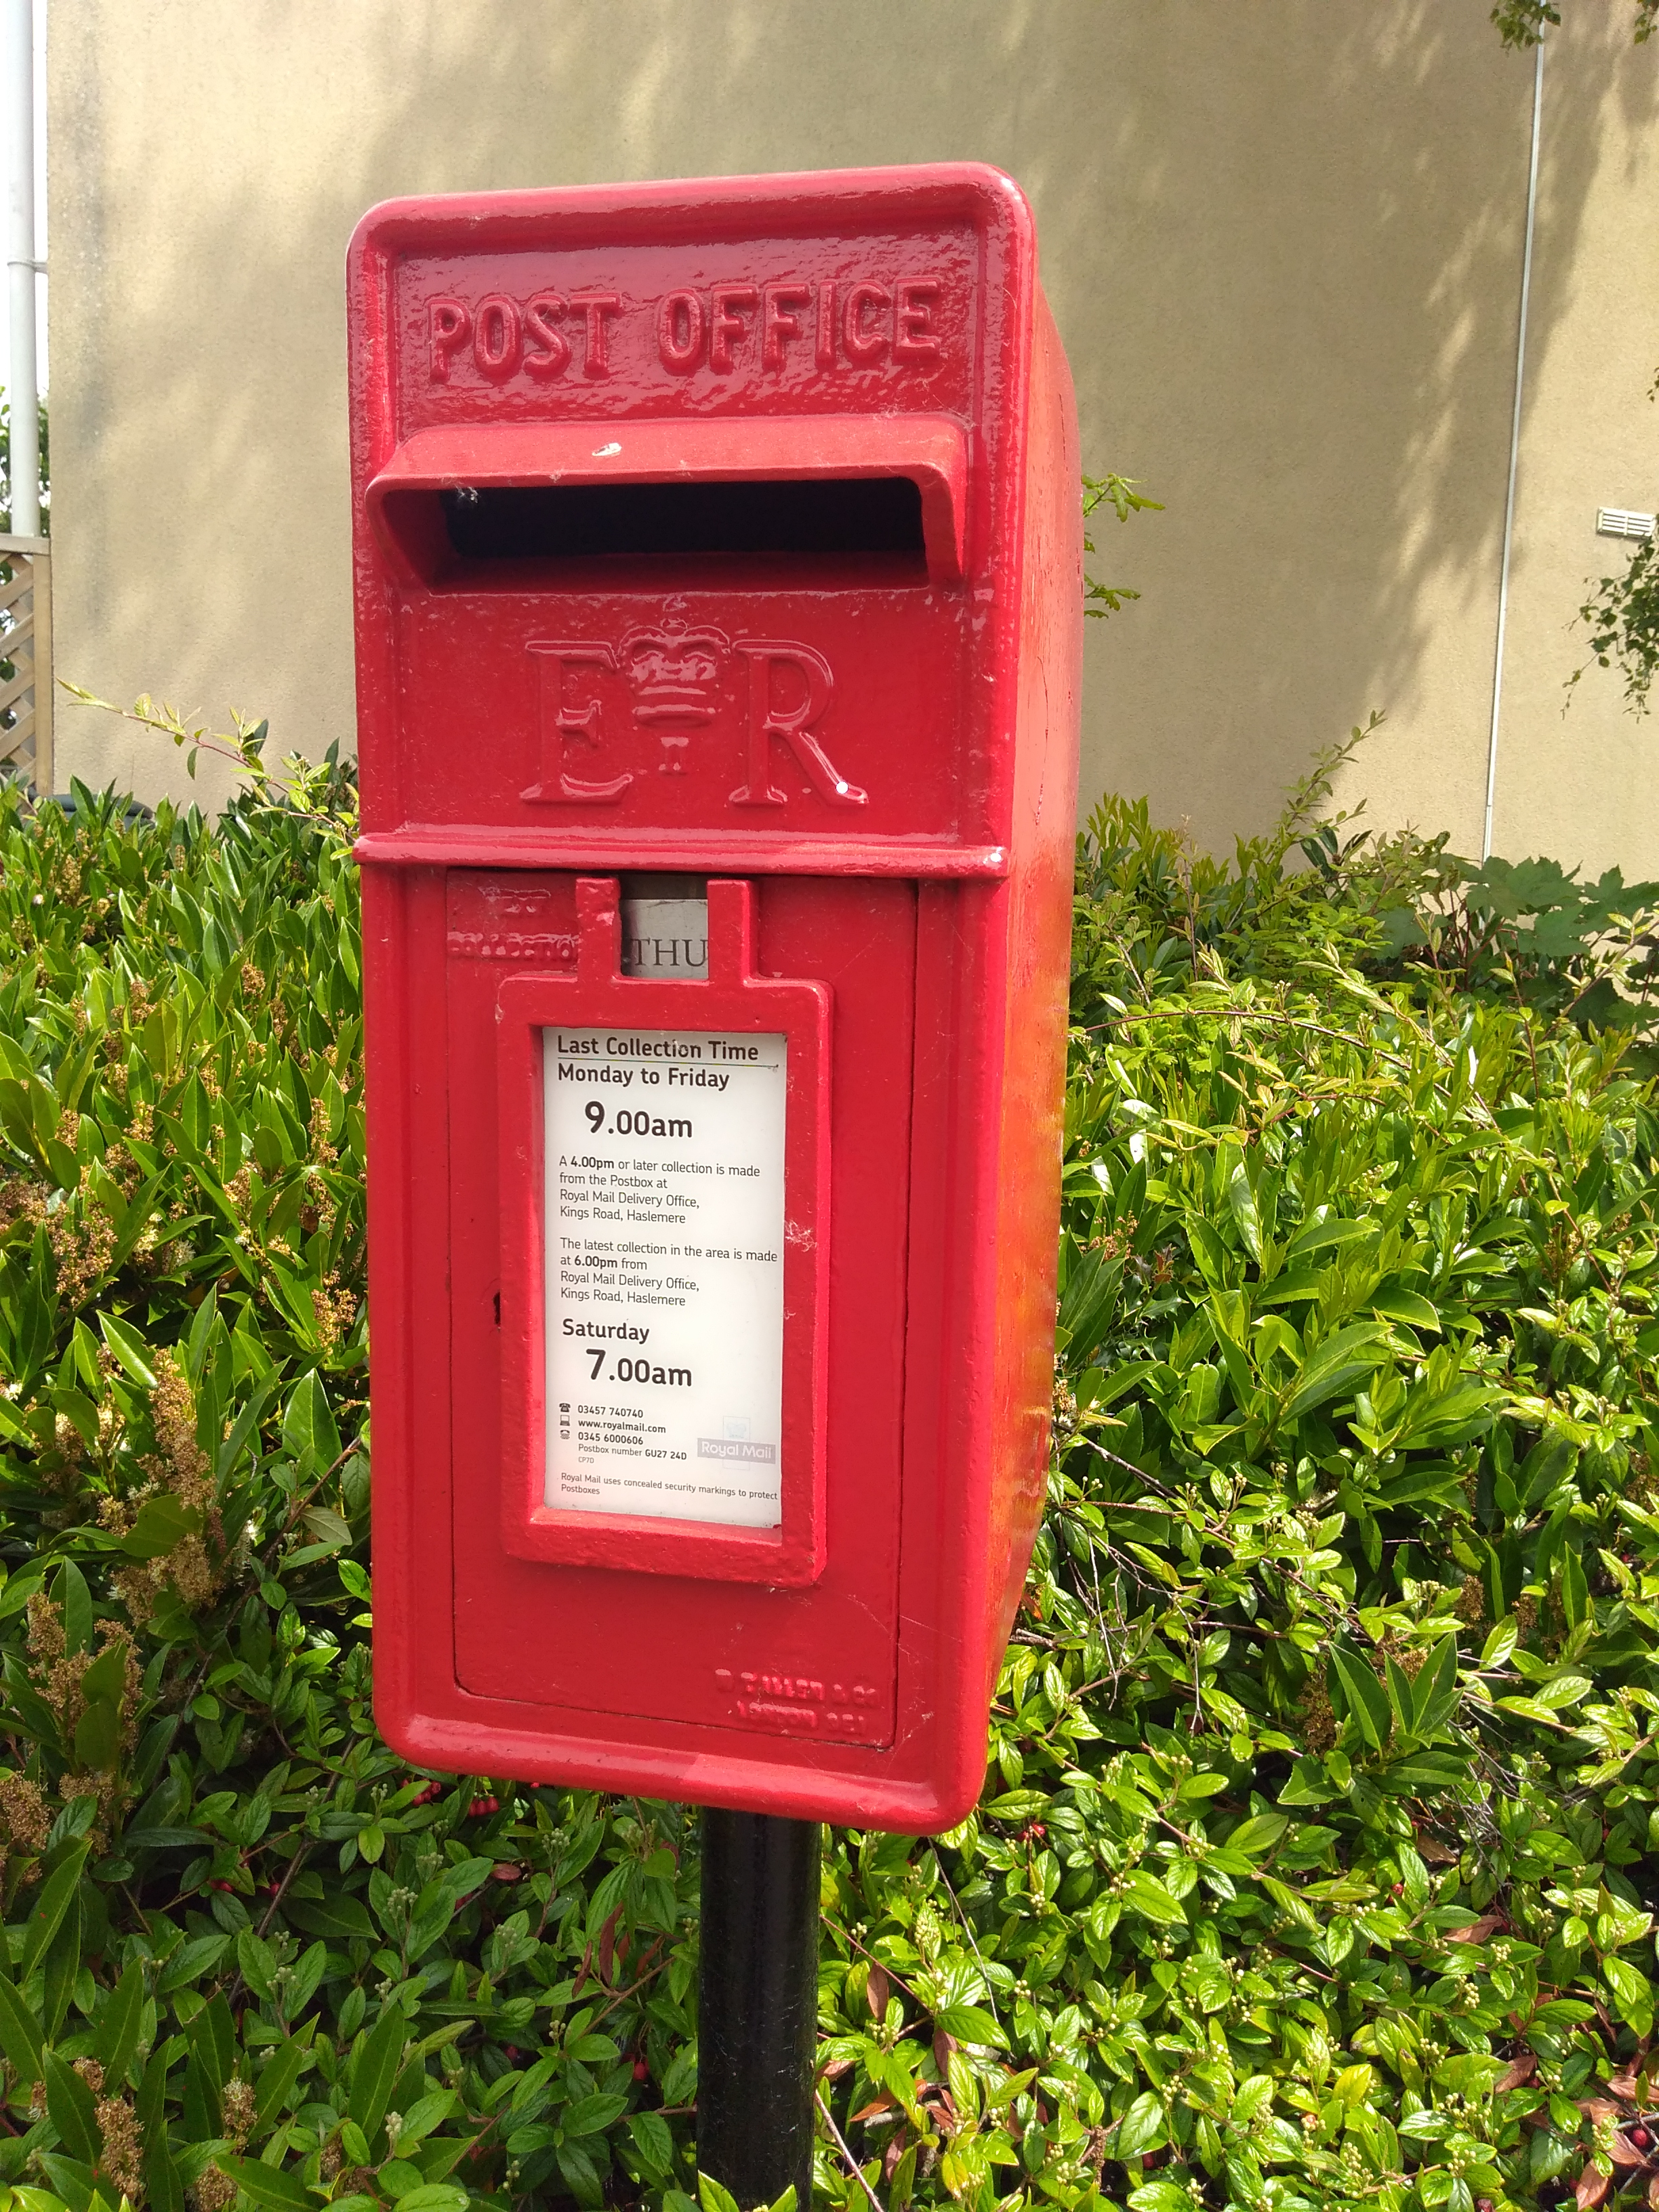 File:Post Box GU27 24D, The Meads, Haslemere, Surrey.jpg